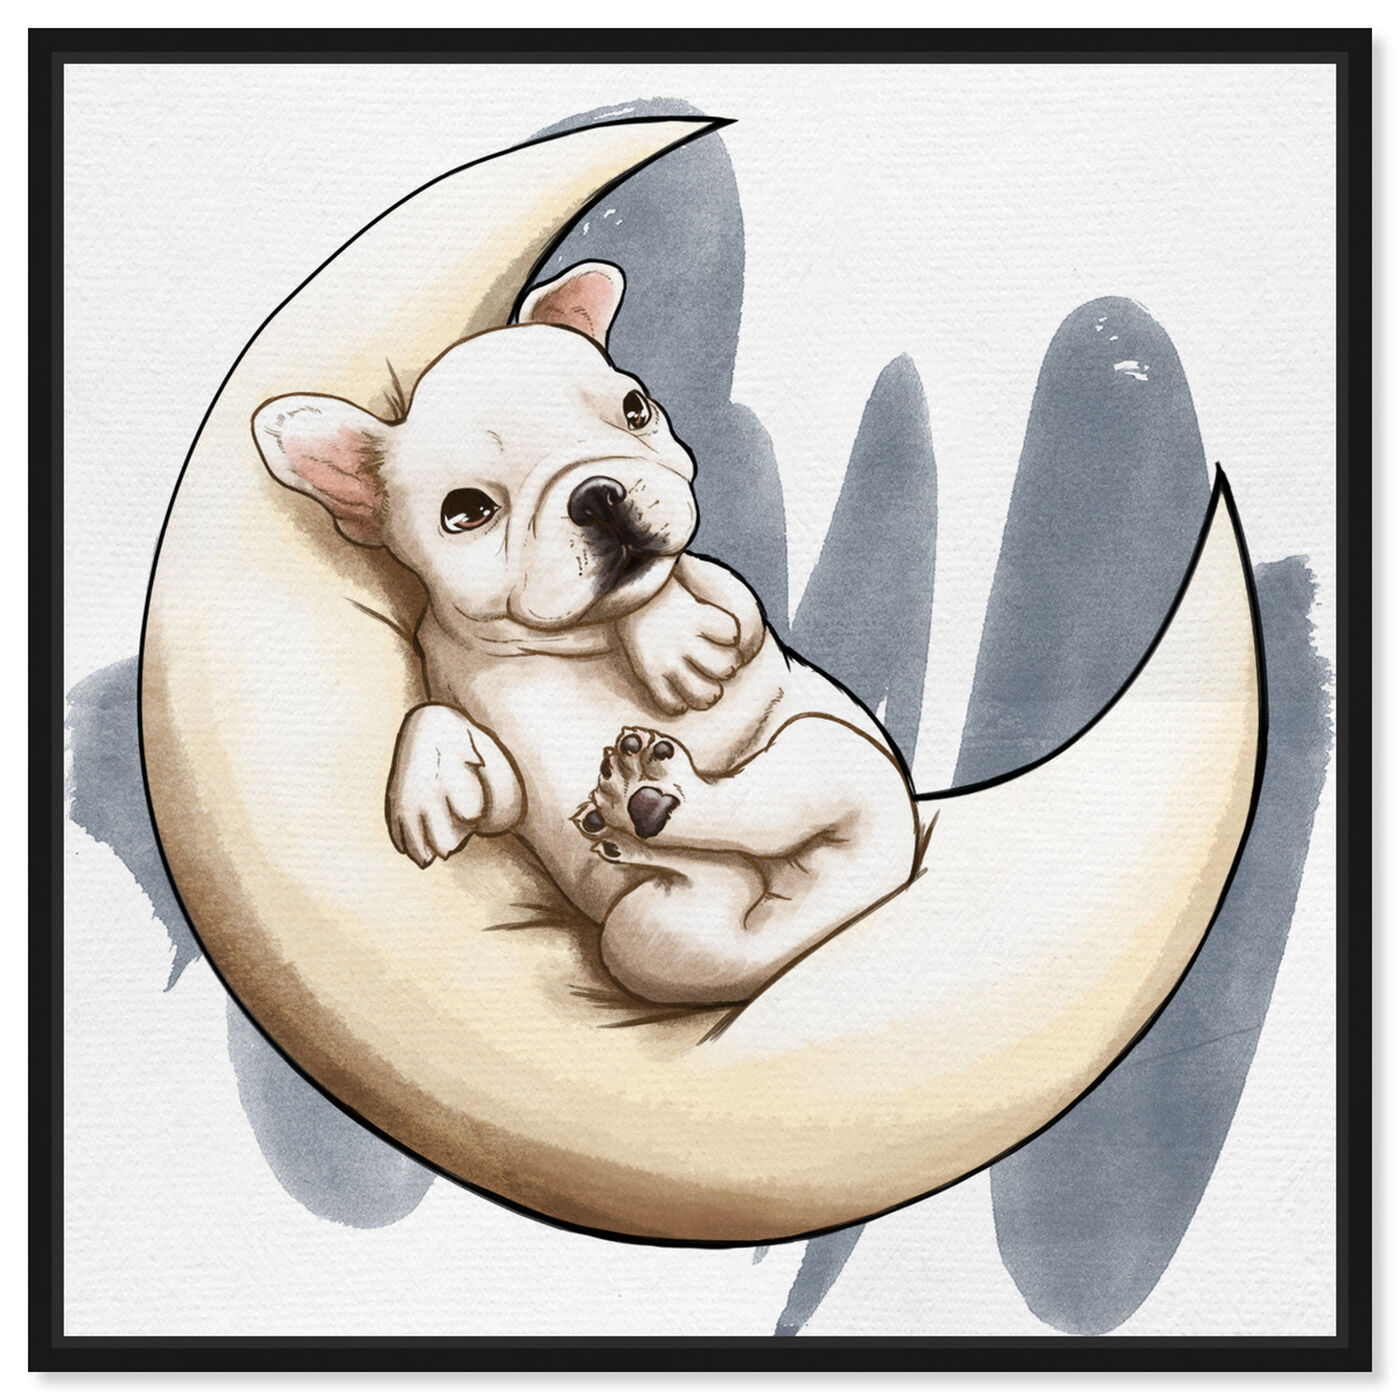 Front view of Lunar Frenchie featuring animals and dogs and puppies art.